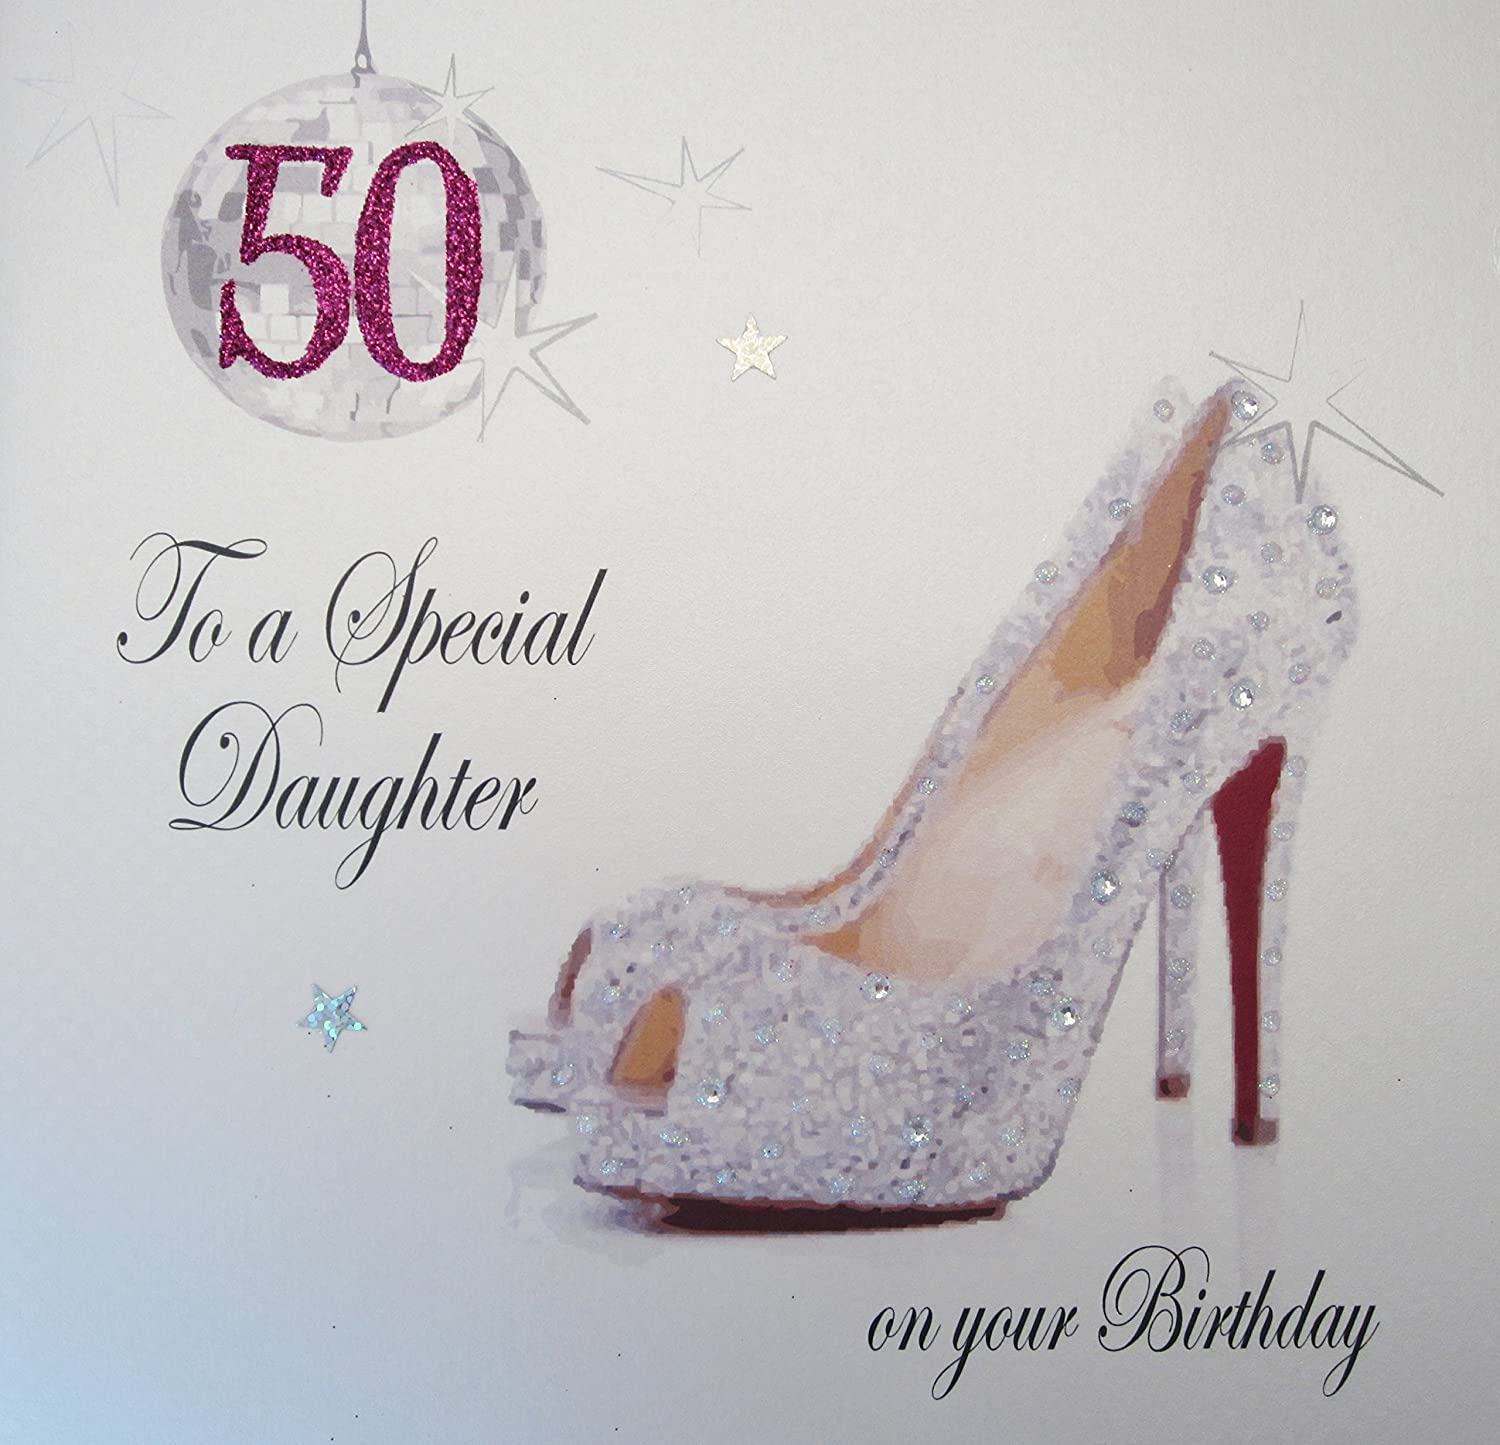 White cotton cards x50d large glitter ball shoes 50 to a special white cotton cards x50d large glitter ball shoes 50 to a special daughter on your birthday handmade 50th birthday card amazon kitchen home bookmarktalkfo Images